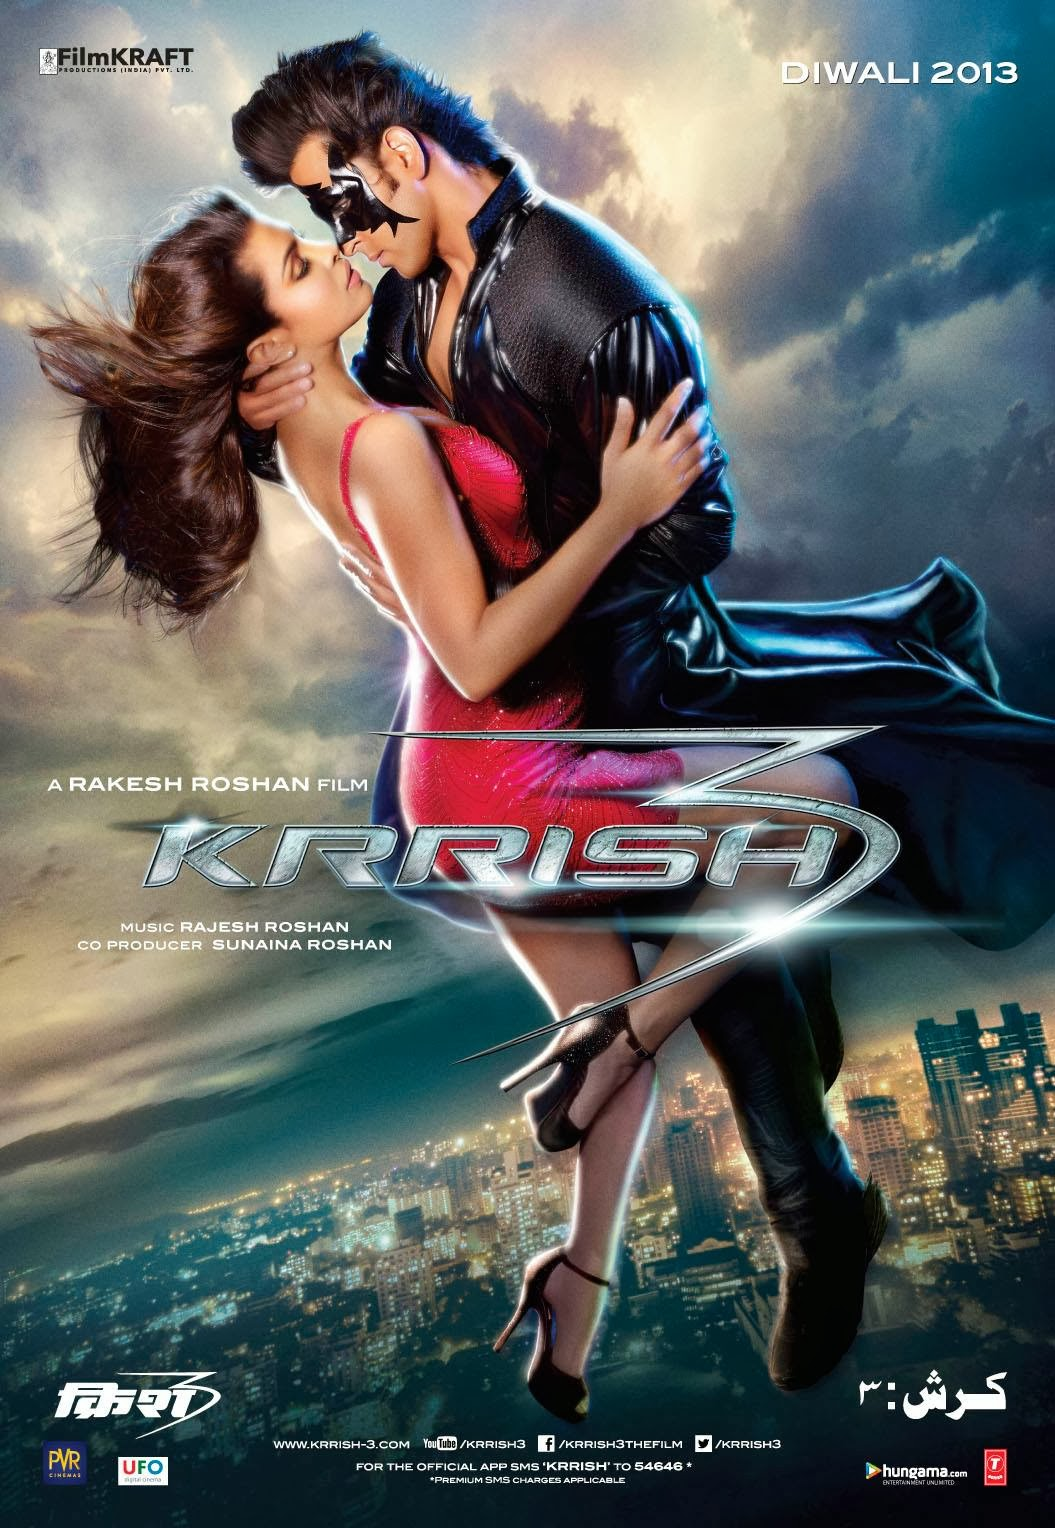 Krrish 3  2013   BD50  1080p Untouched BluRay   Eros  DRs | 38 GB |